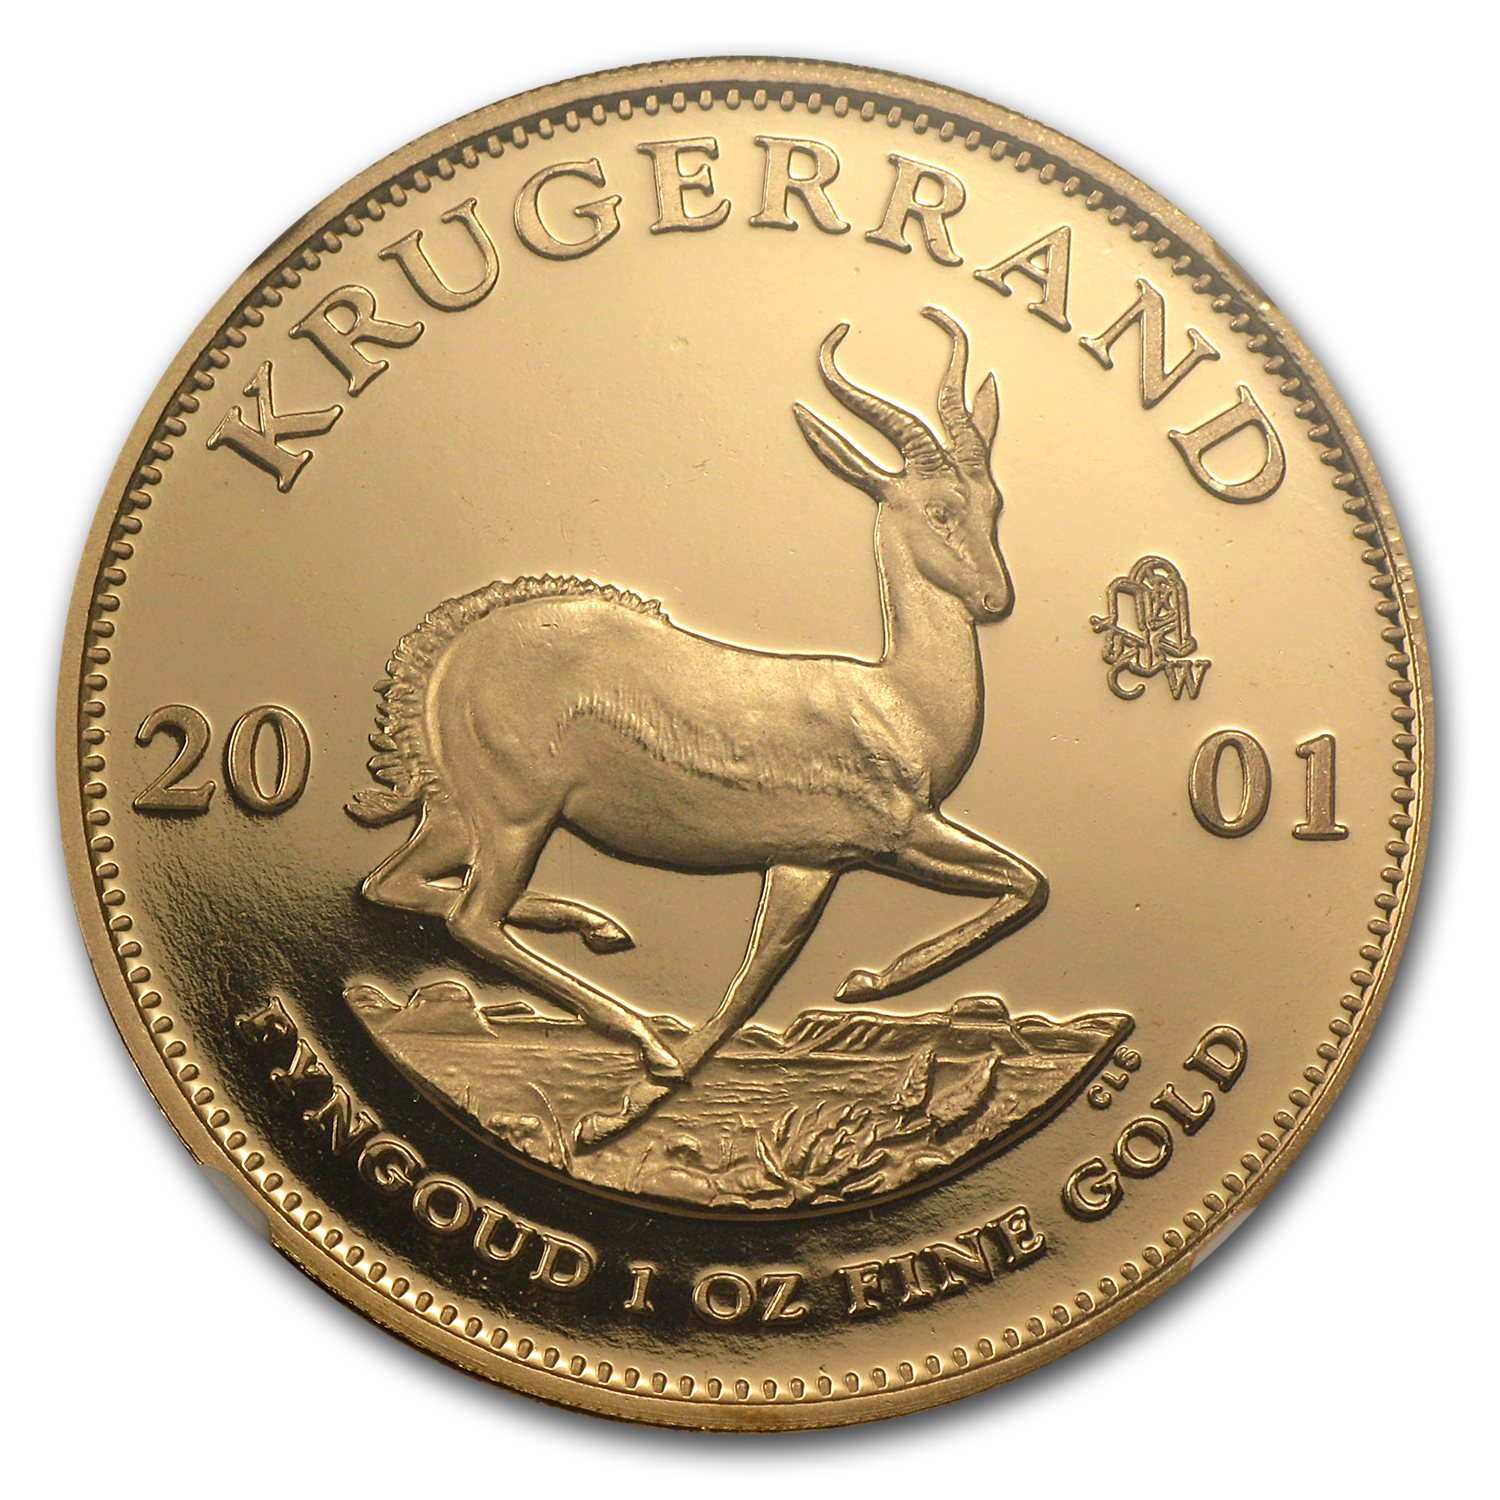 2001 South Africa 1 oz Gold Krugerrand PF-67 NGC (CW Privy)